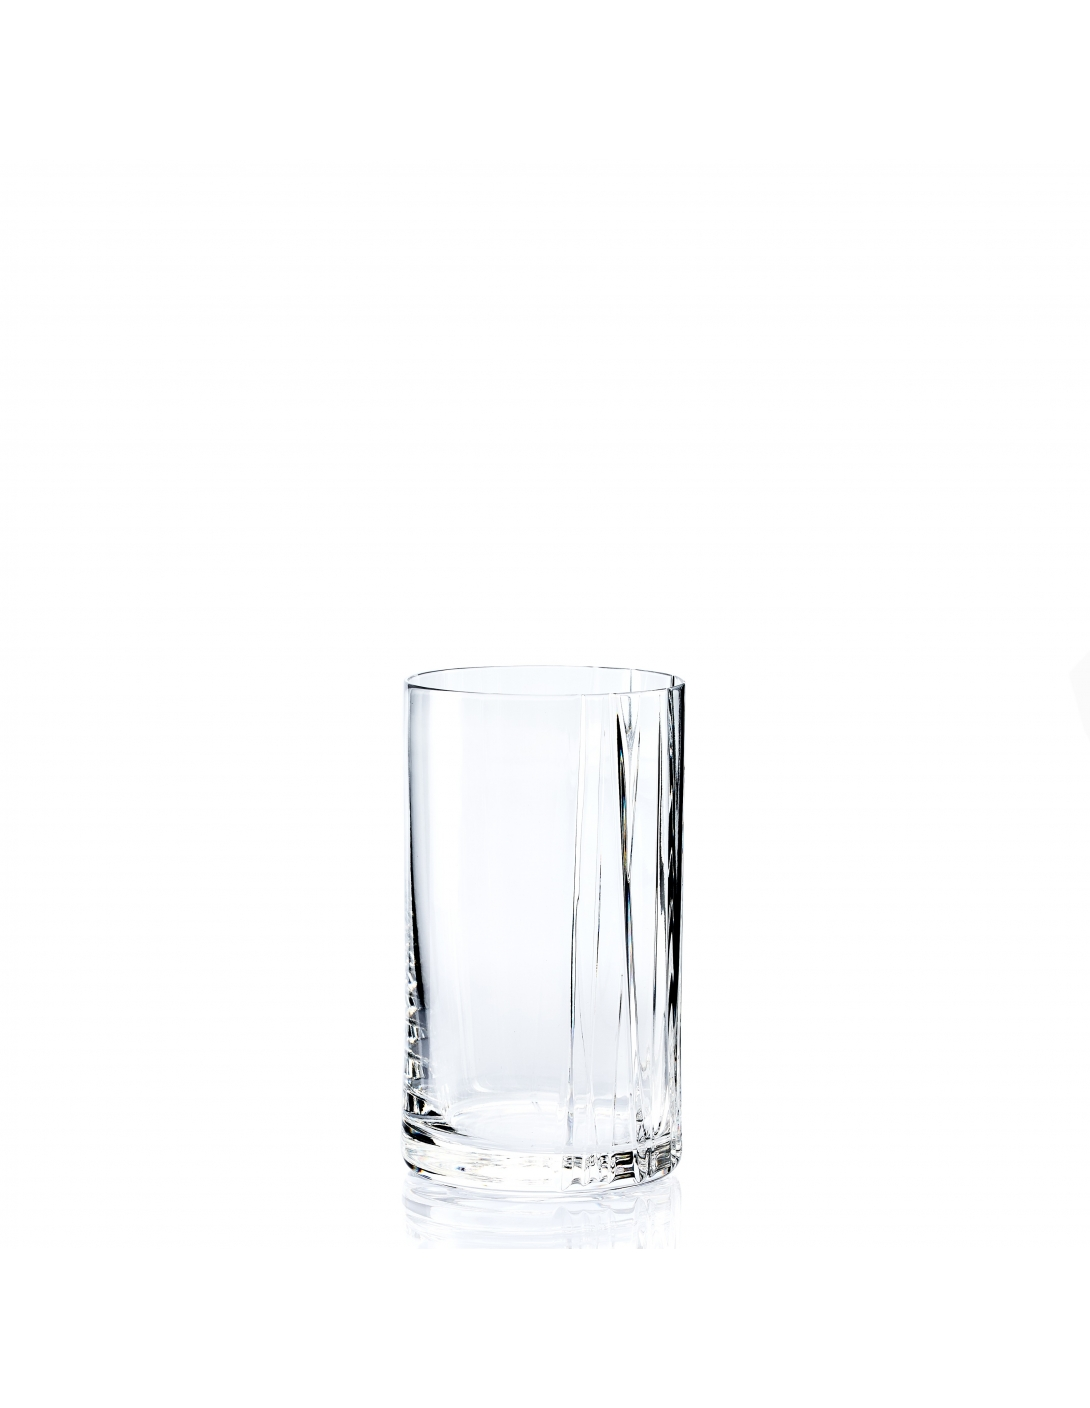 Fifty-Fifty HB tumbler set of 6 pieces